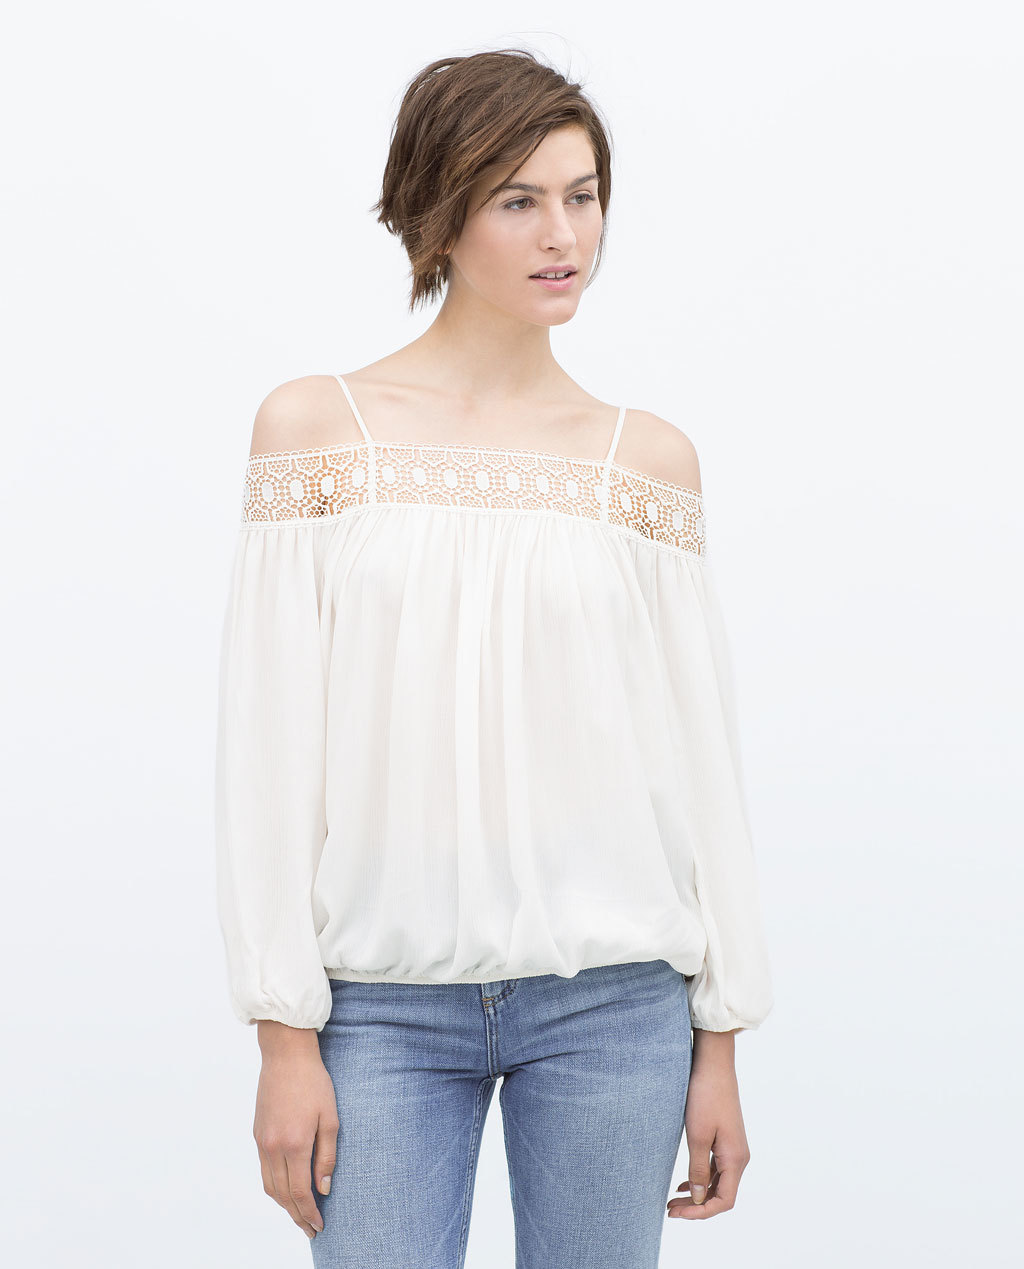 Off Shoulder Blouse - neckline: off the shoulder; pattern: plain; predominant colour: ivory/cream; occasions: casual, creative work; length: standard; fit: loose; style: gypsy/peasant; sleeve length: long sleeve; sleeve style: standard; pattern type: fabric; texture group: other - light to midweight; season: s/s 2015; wardrobe: highlight